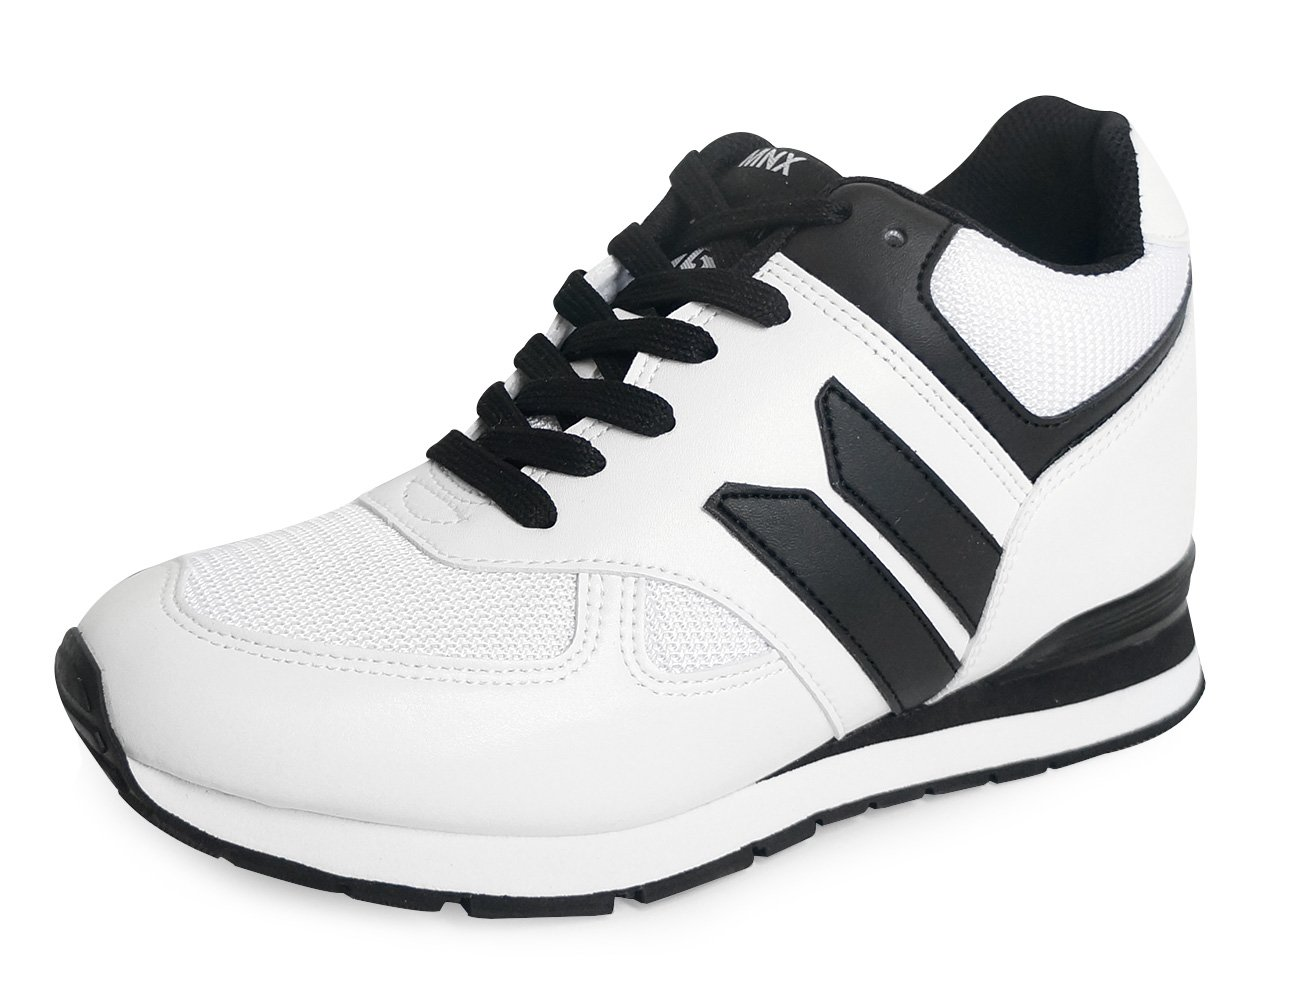 MNX15 Men's Elevator Shoes Height Increase 3.5